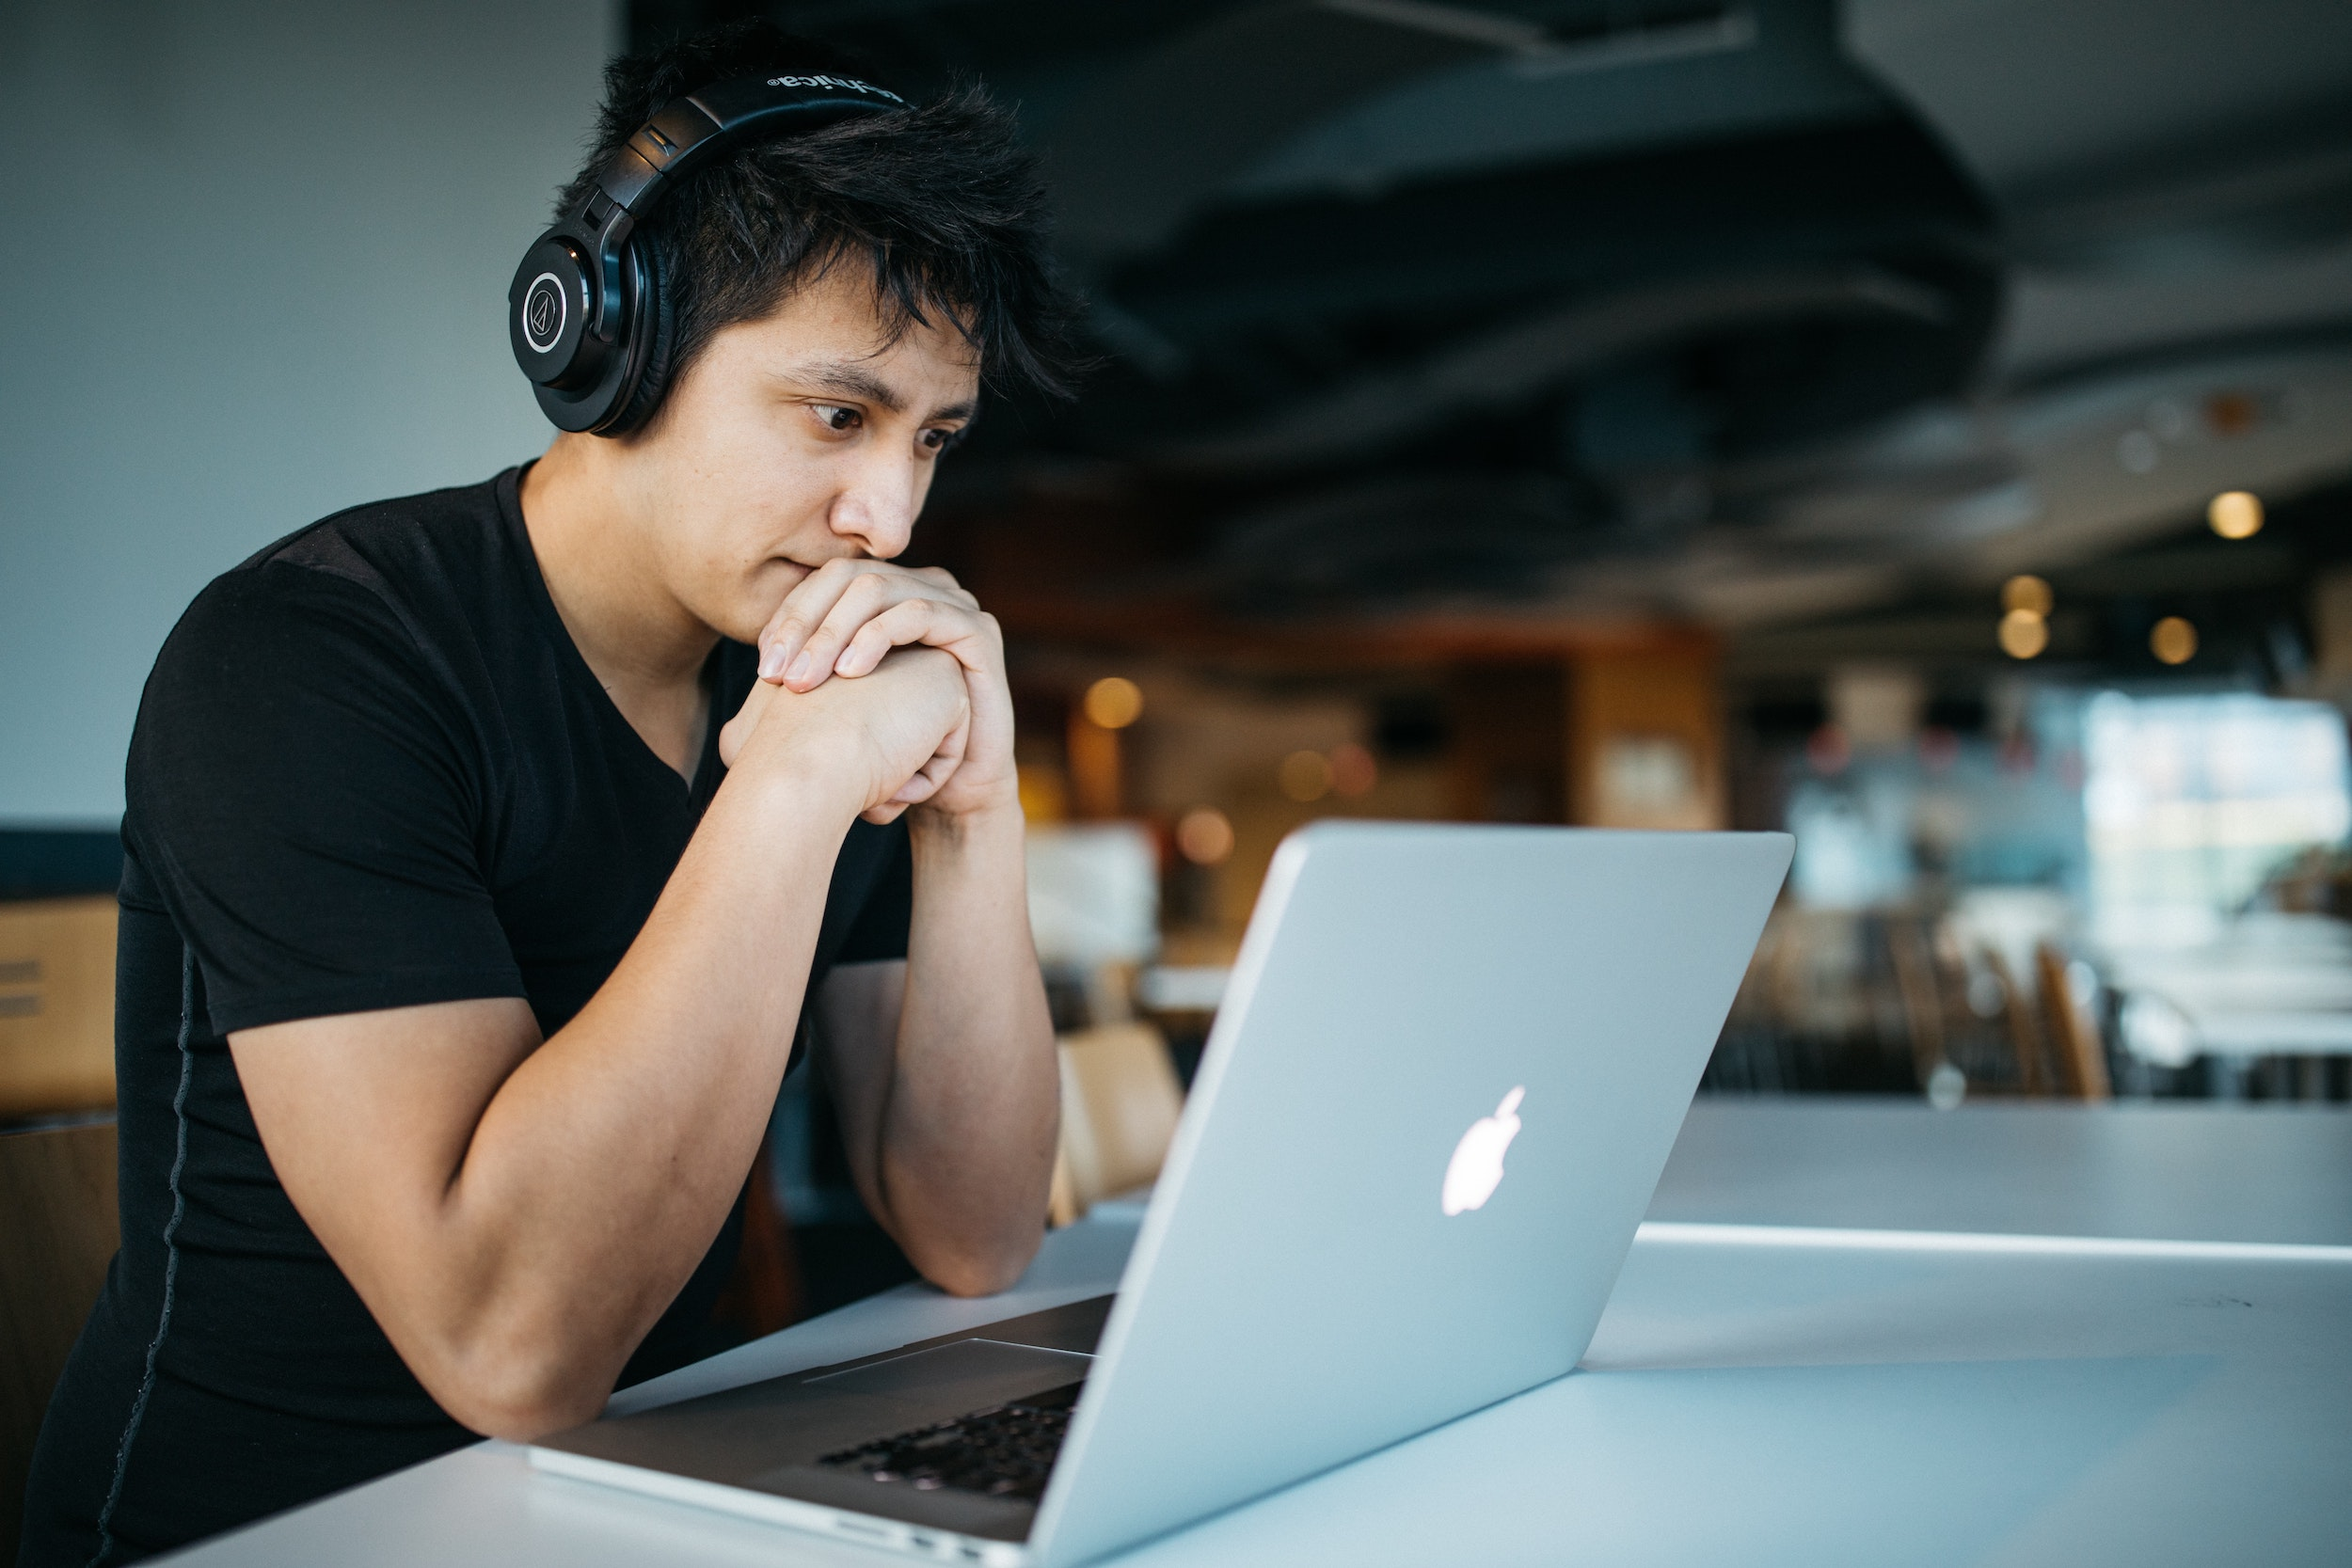 Young male looking at a laptop screen while wearing headphones